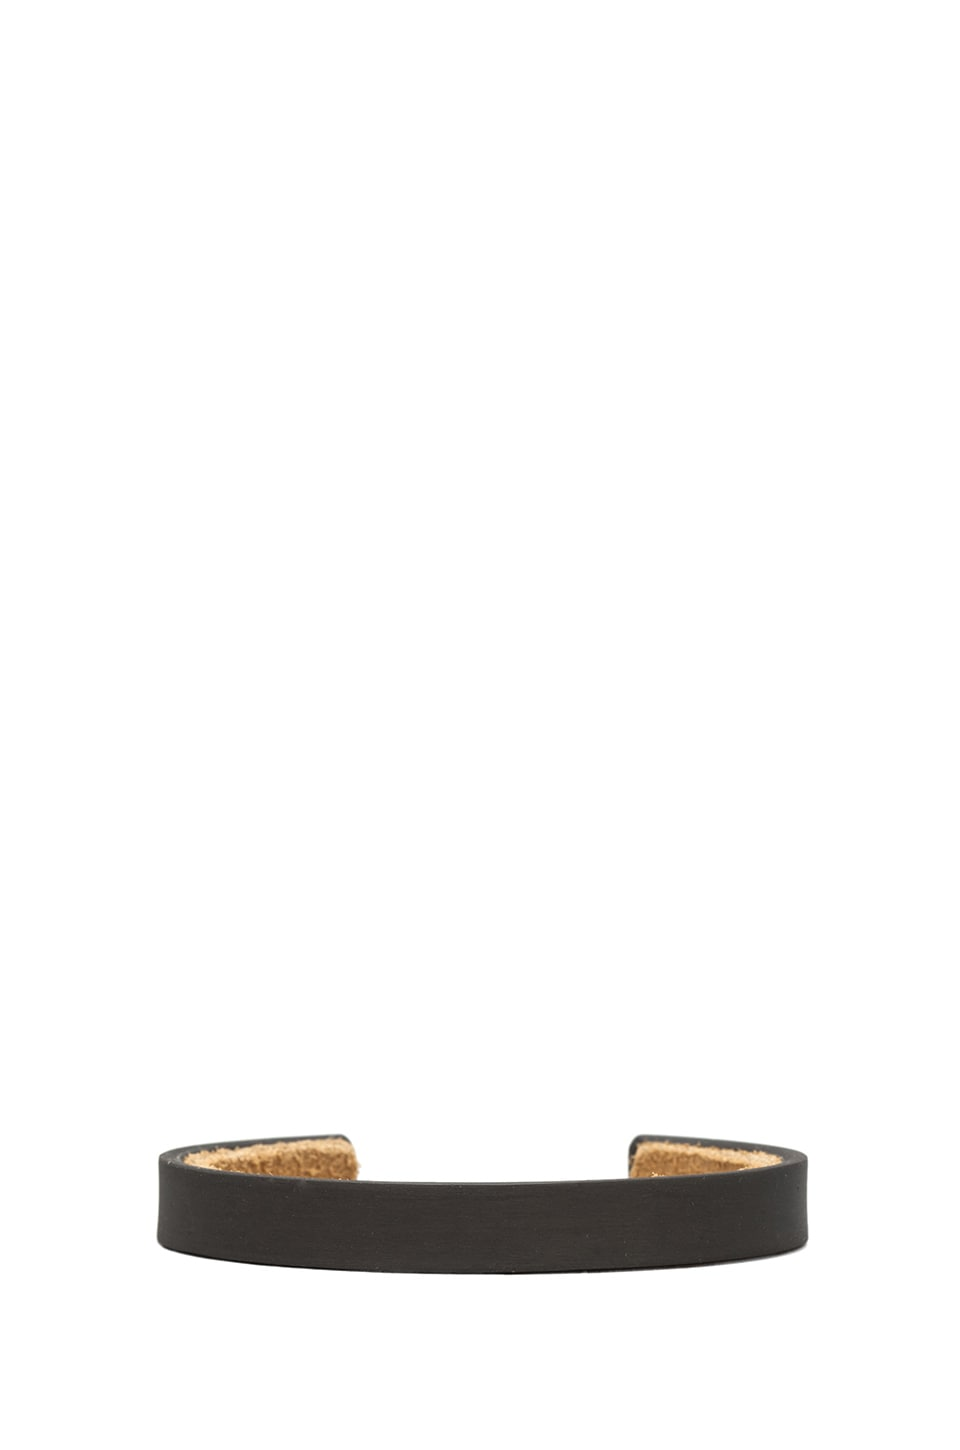 Marmol Radziner Men's Suede Lined Thin Cuff in Dark Bronze